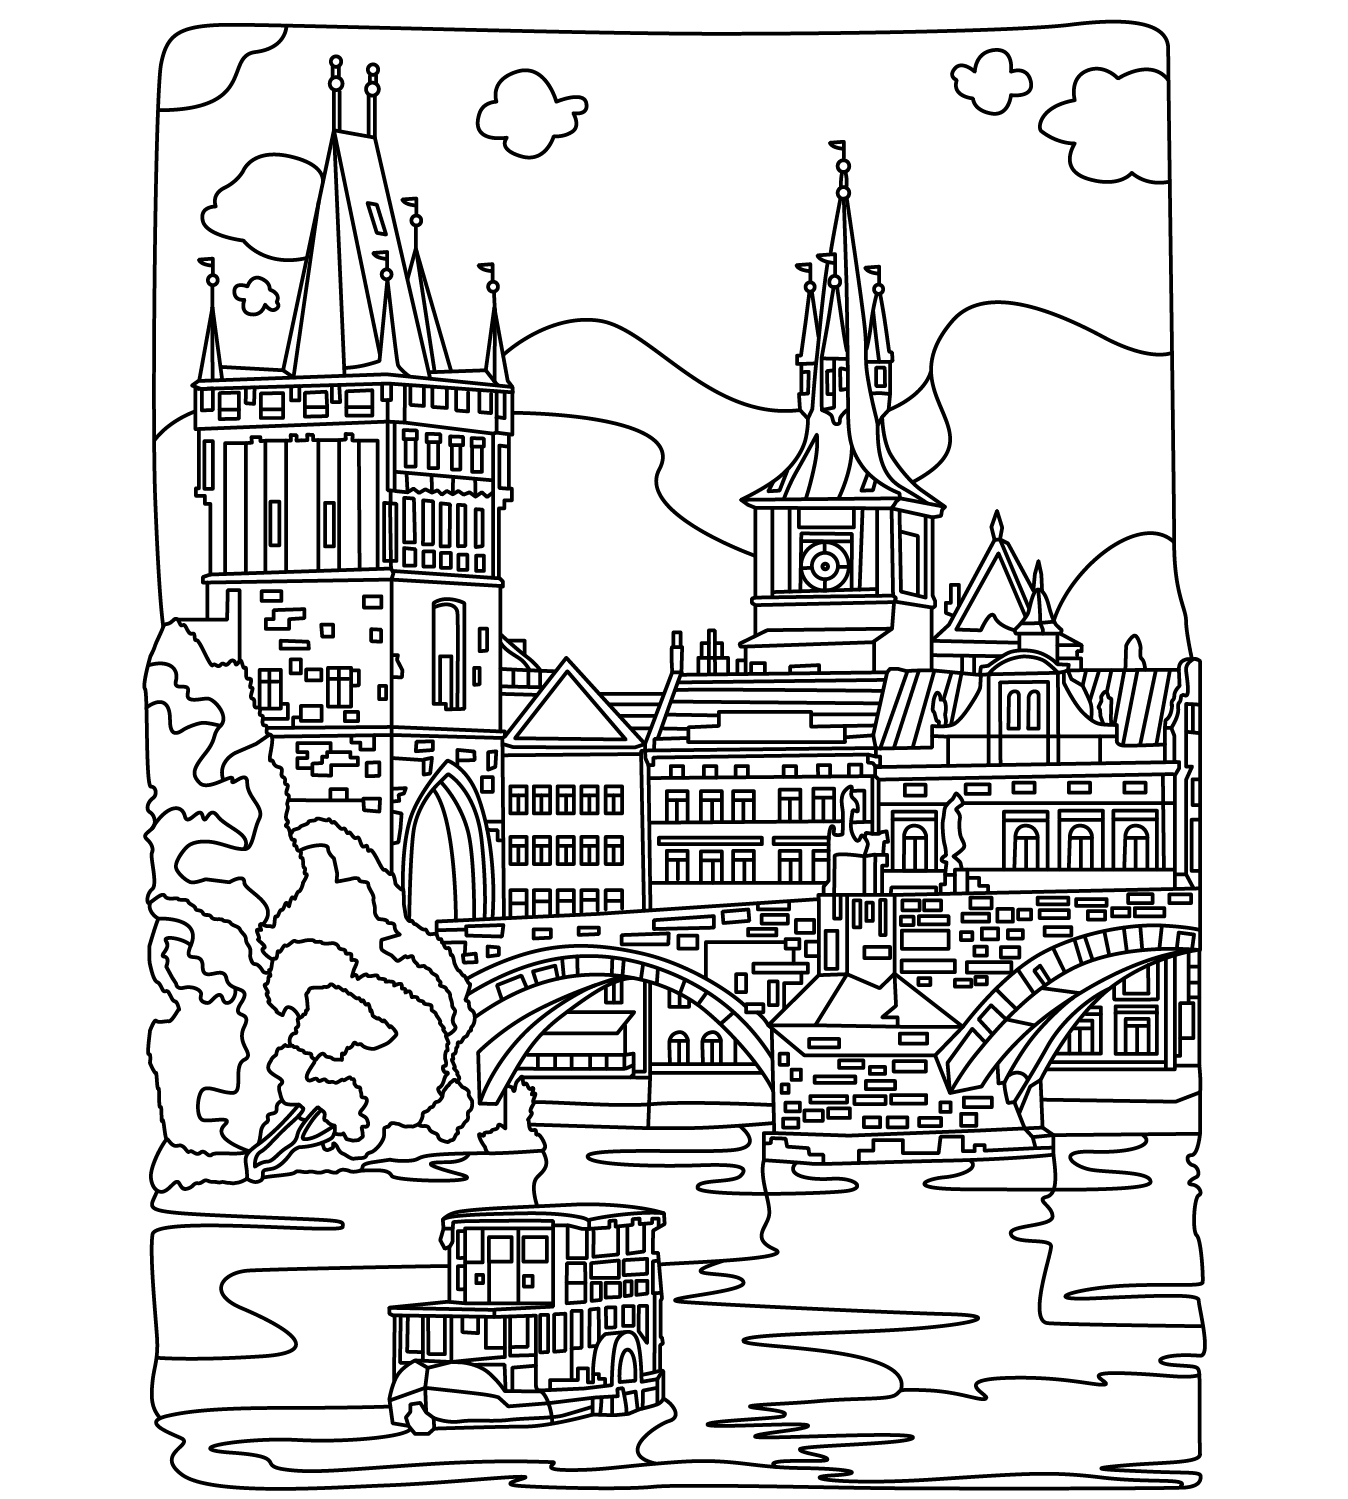 Cities coloring page | Colorish: free coloring app for ...